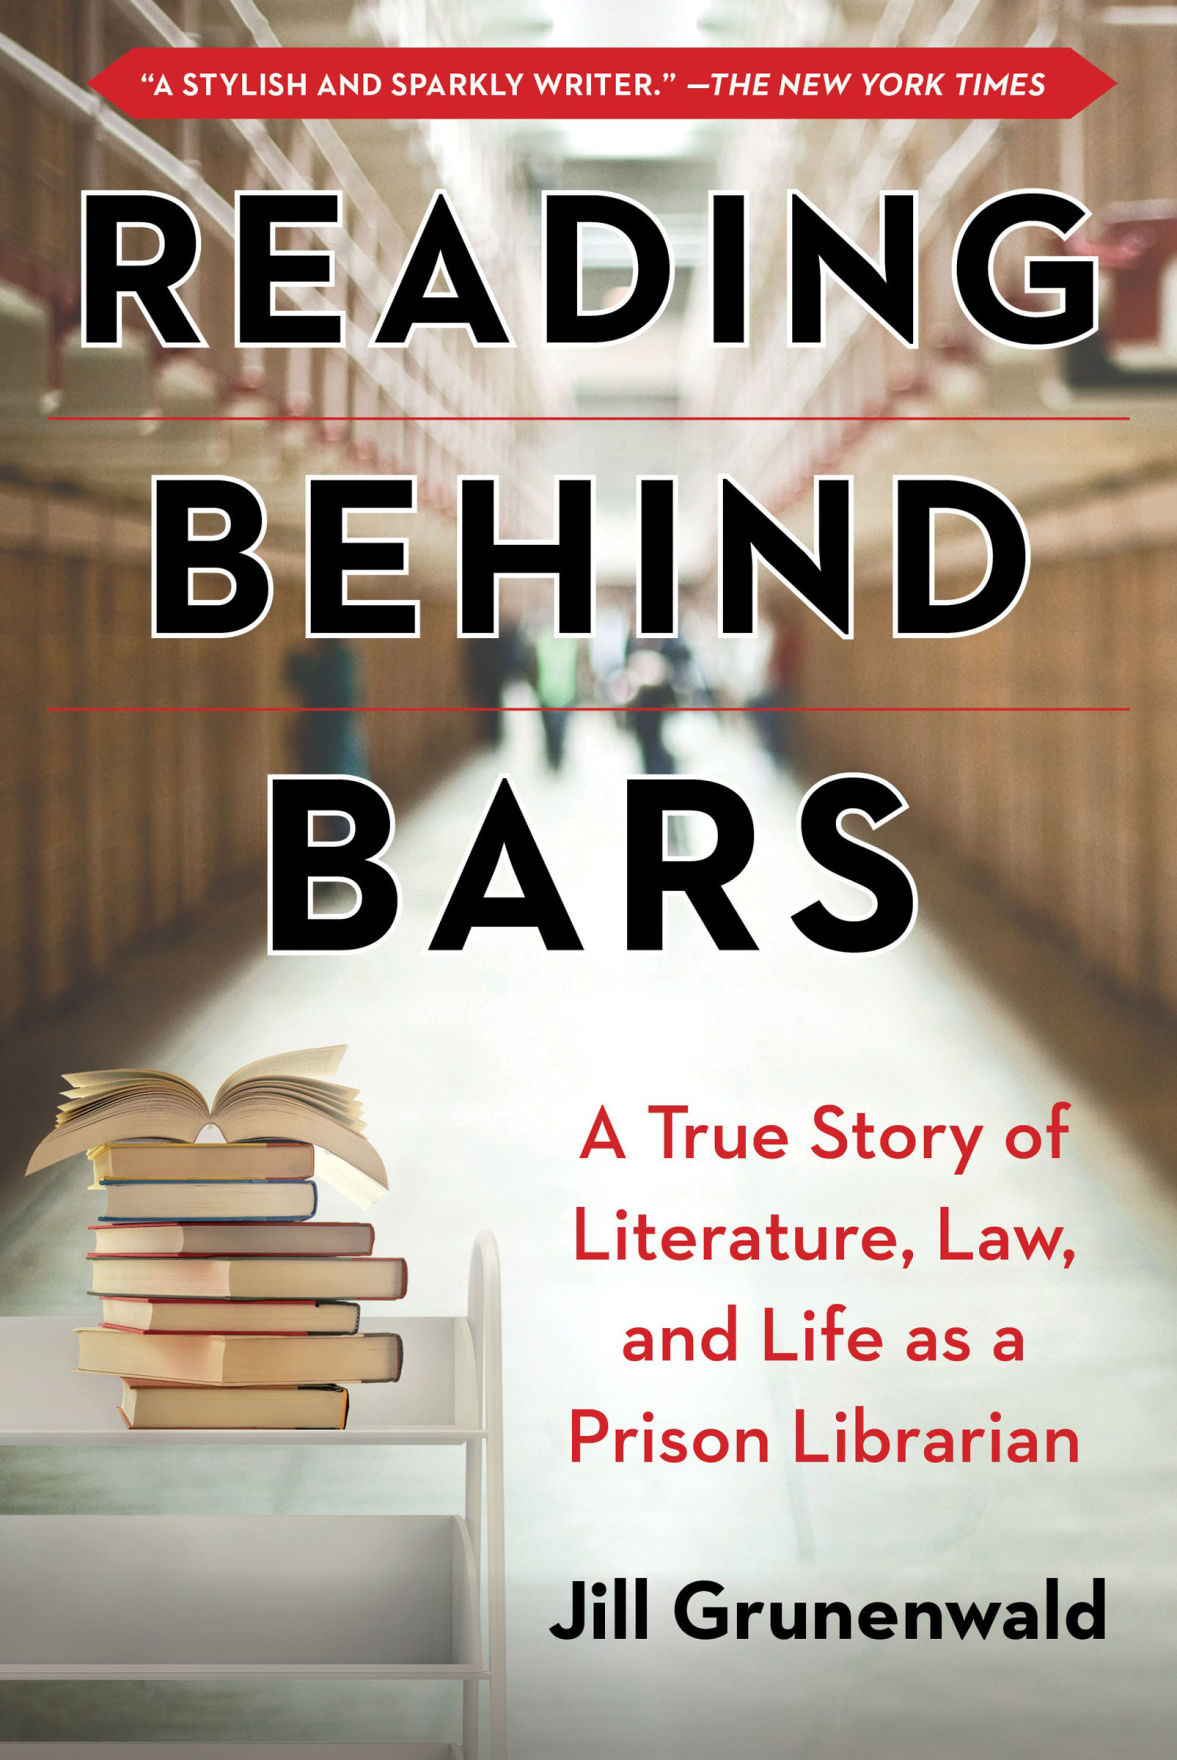 THE BOOKWORM SEZ: 'Reading Behind Bars' an arresting tale